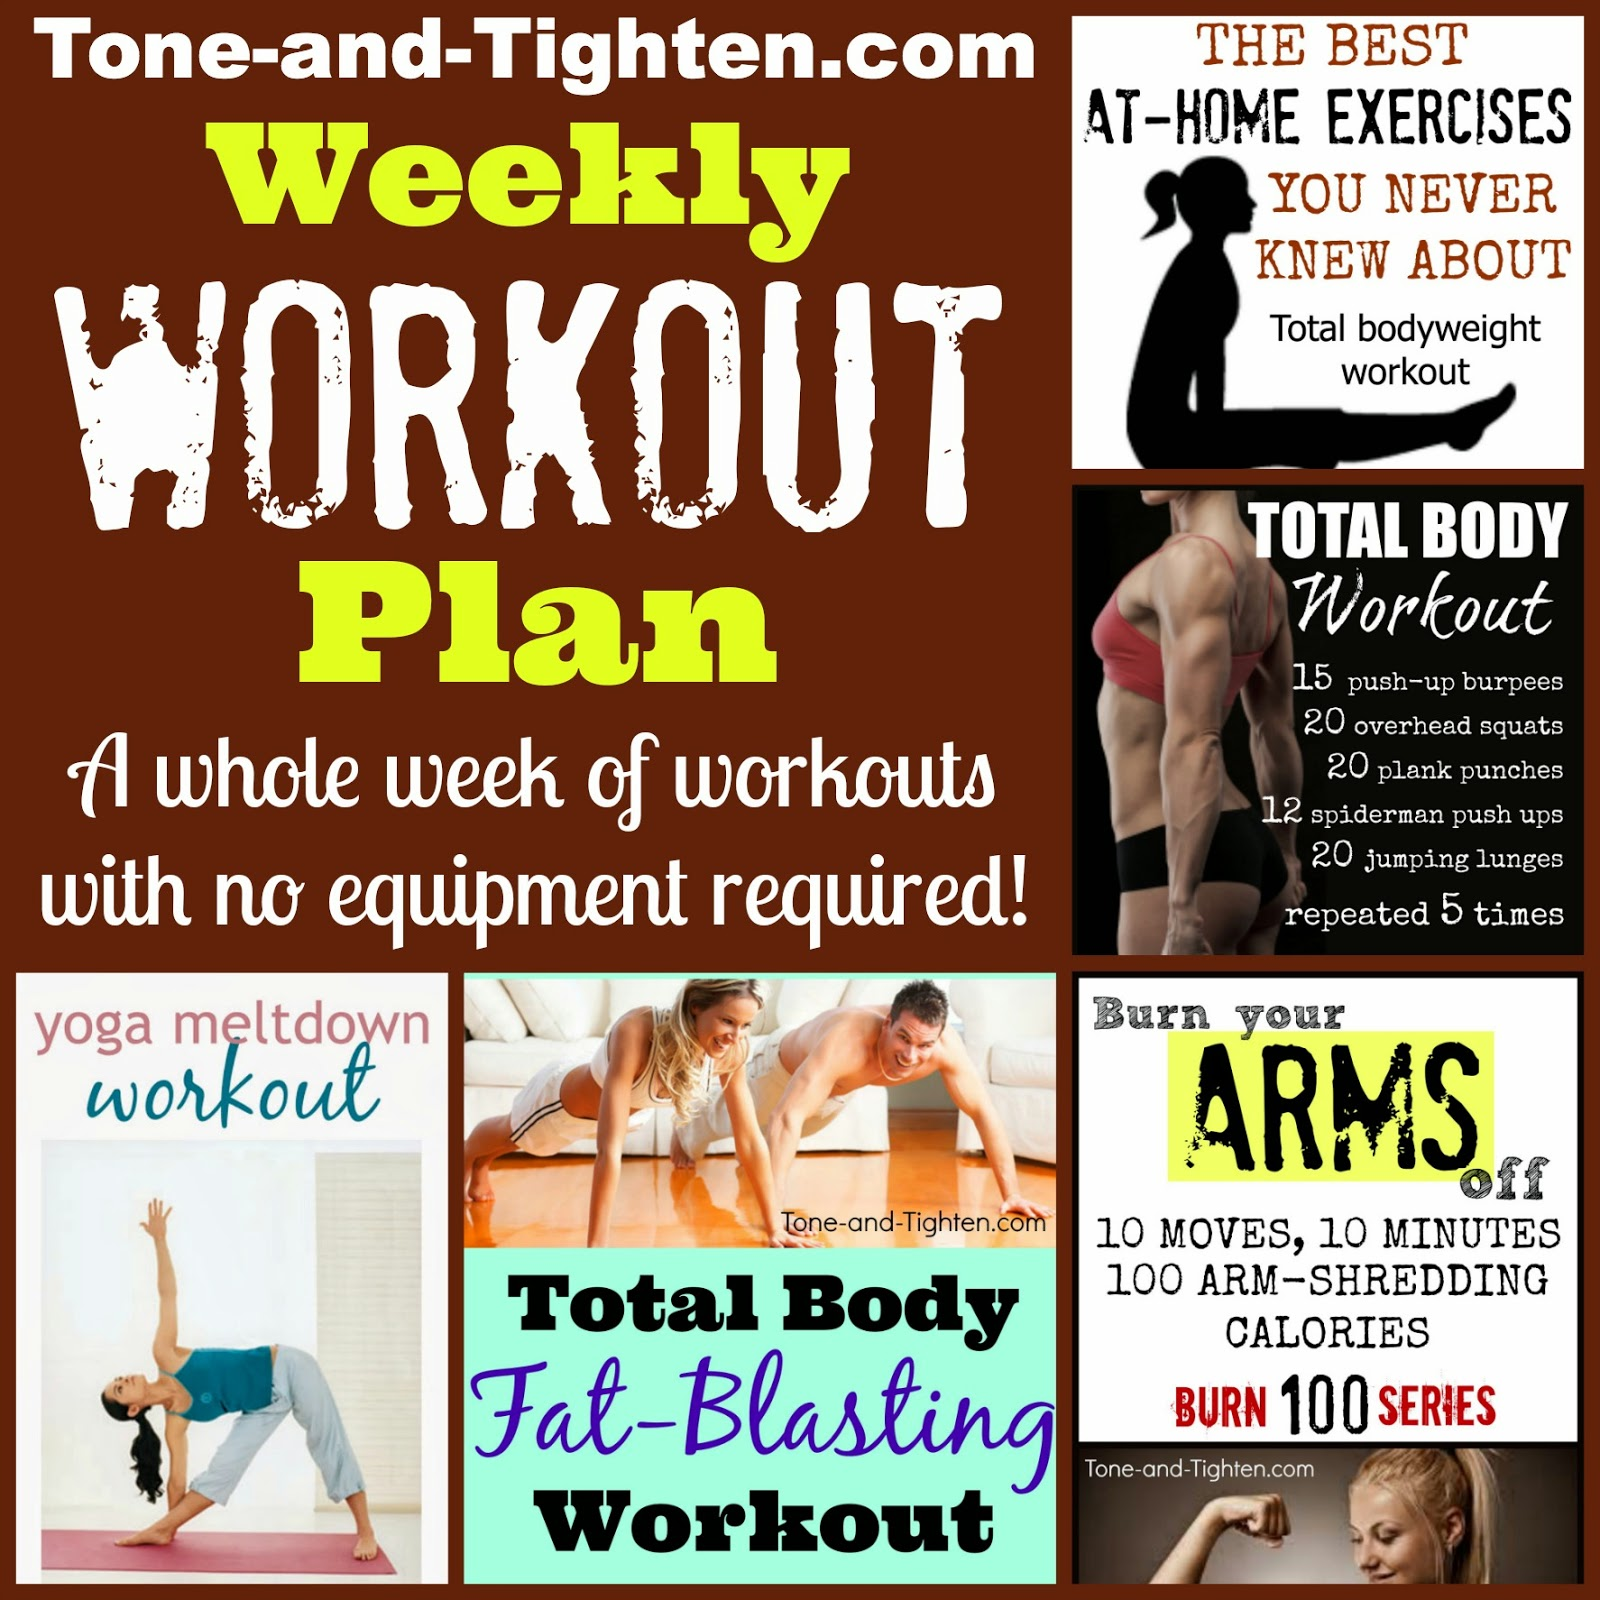 https://tone-and-tighten.com/2014/03/weekly-workout-plan-at-home-workouts-with-no-weights-required.html